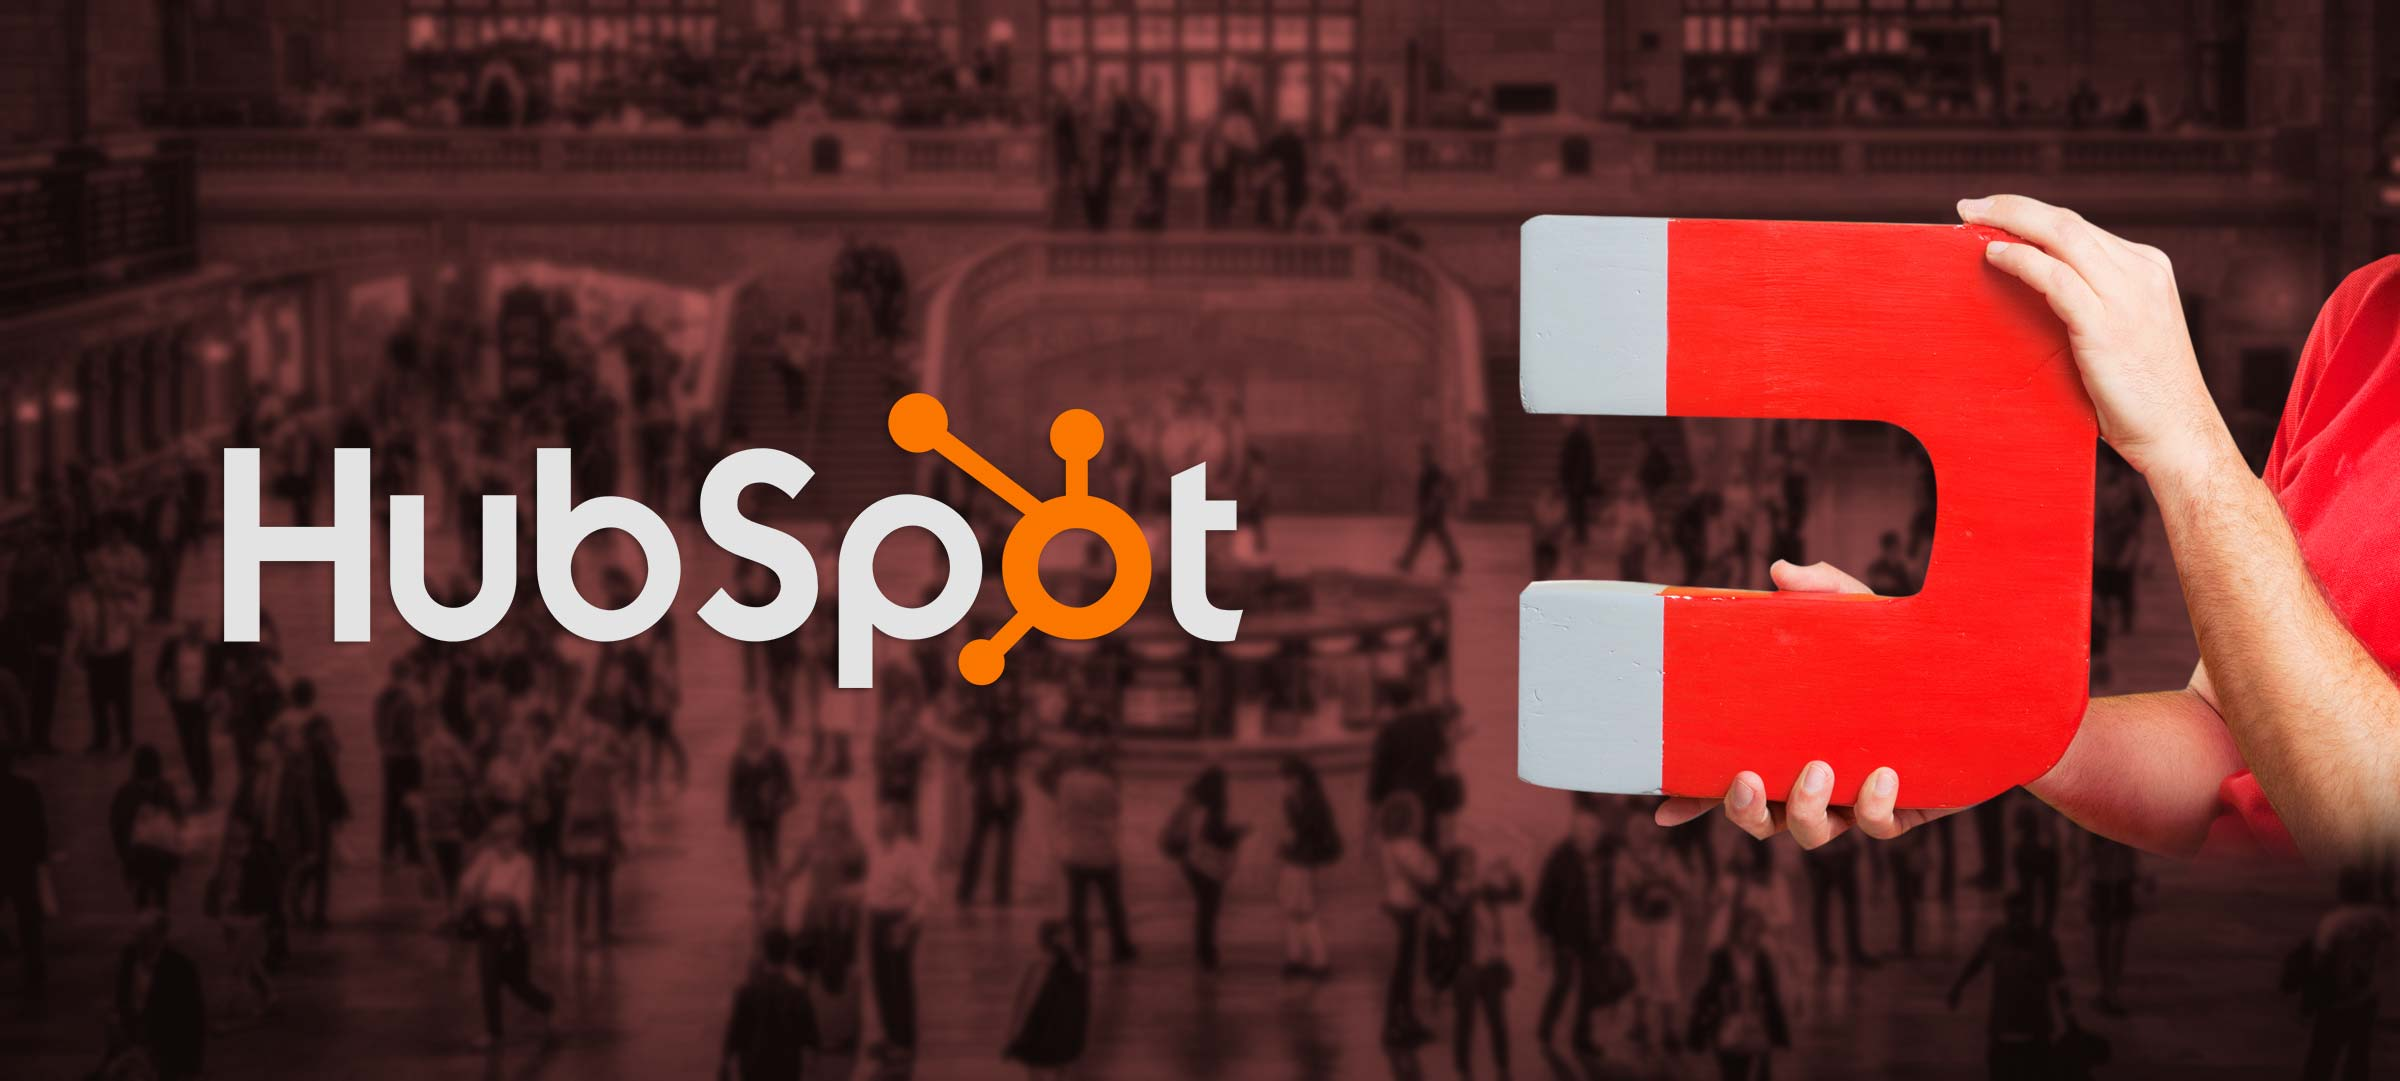 Hubspot is the best platform for Inbound Marketing